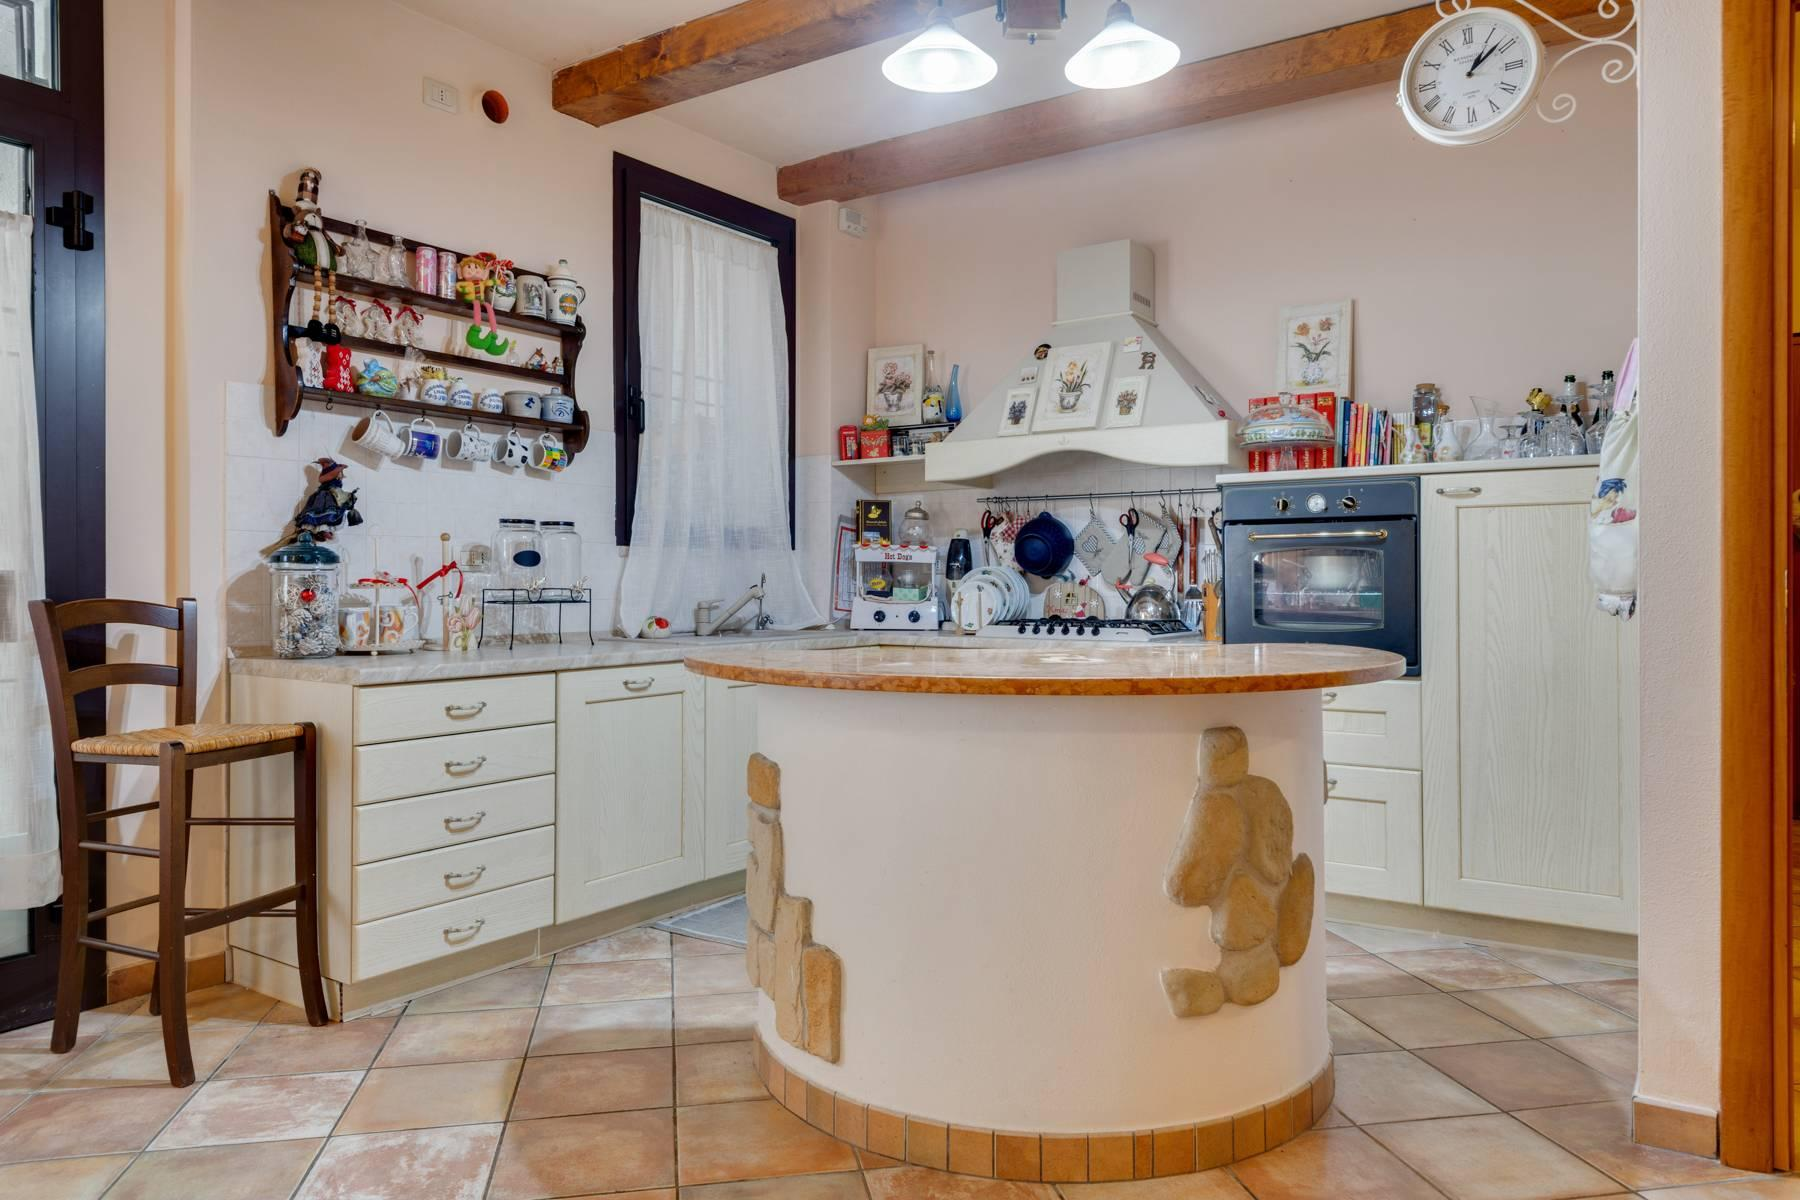 Independent villa with wide garden, just a few steps from the Lake - 12